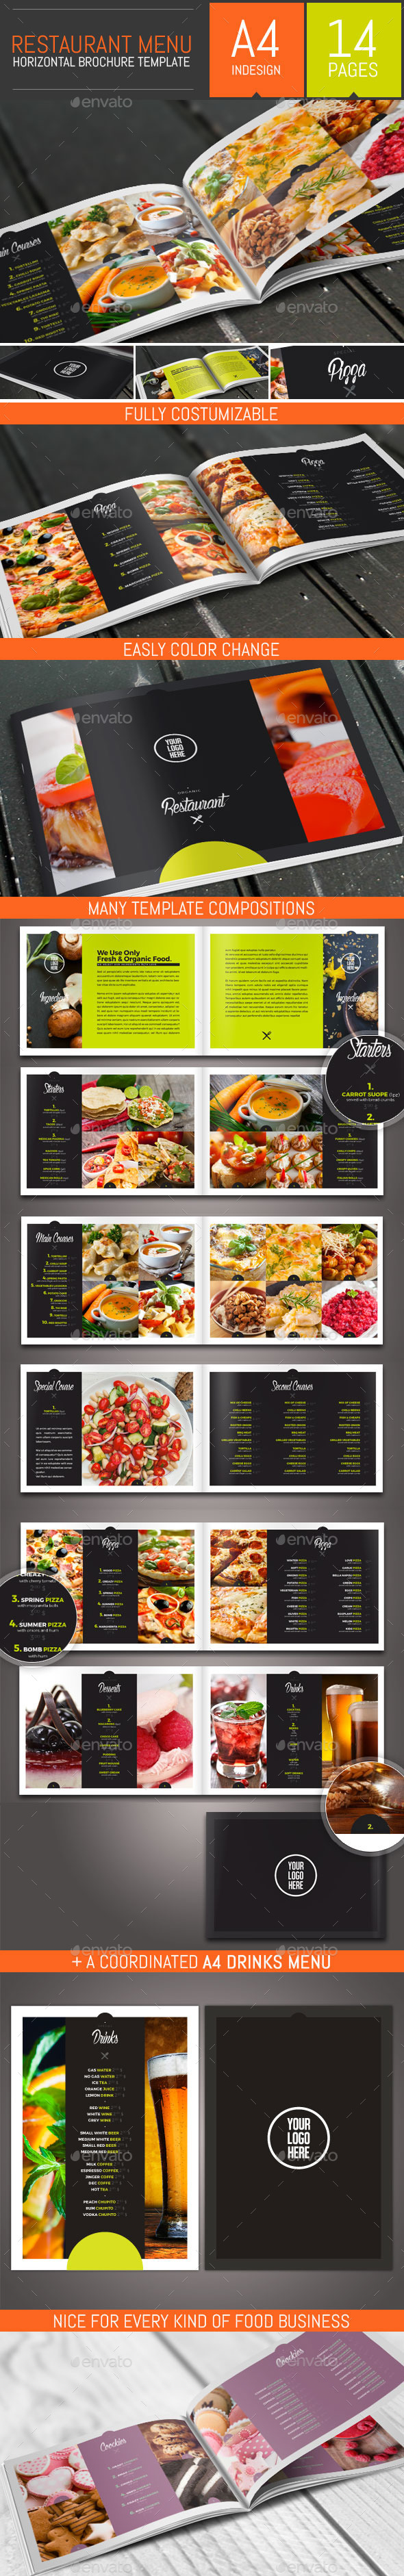 Food Restaurant Menu Brochure / Bi-Fold Template - Food Menus Print Templates